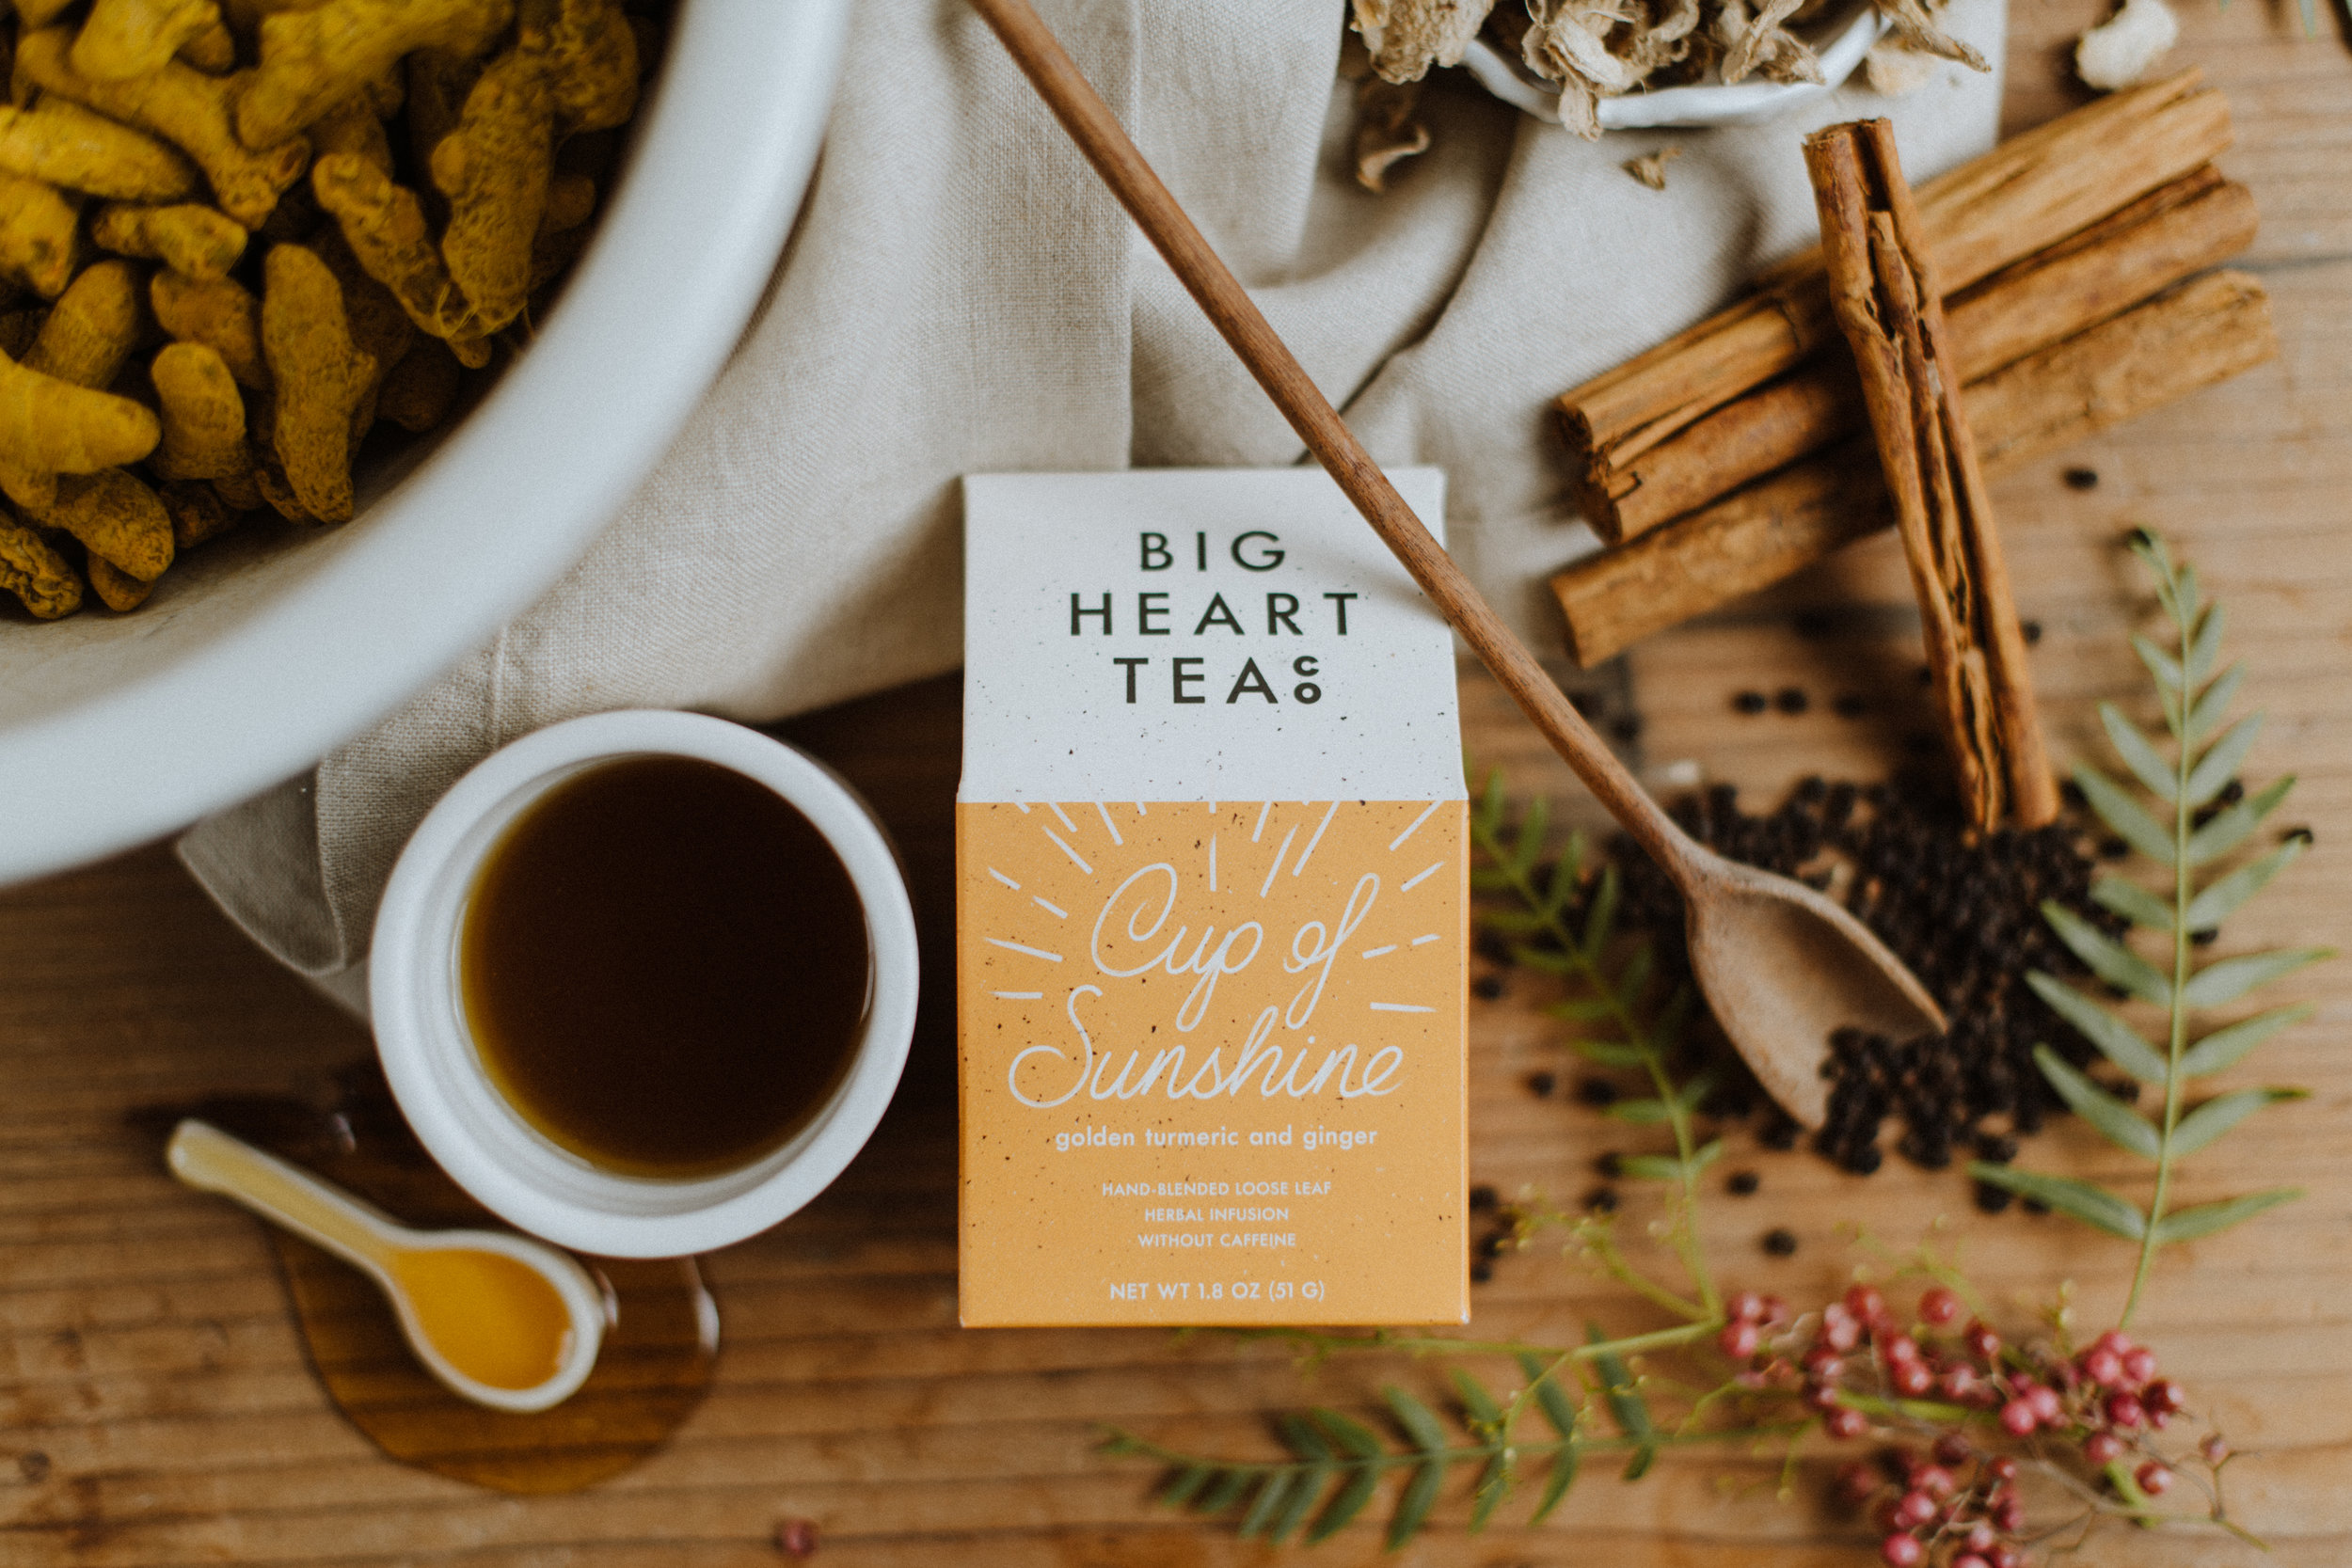 Big Heart Tea-3.jpg